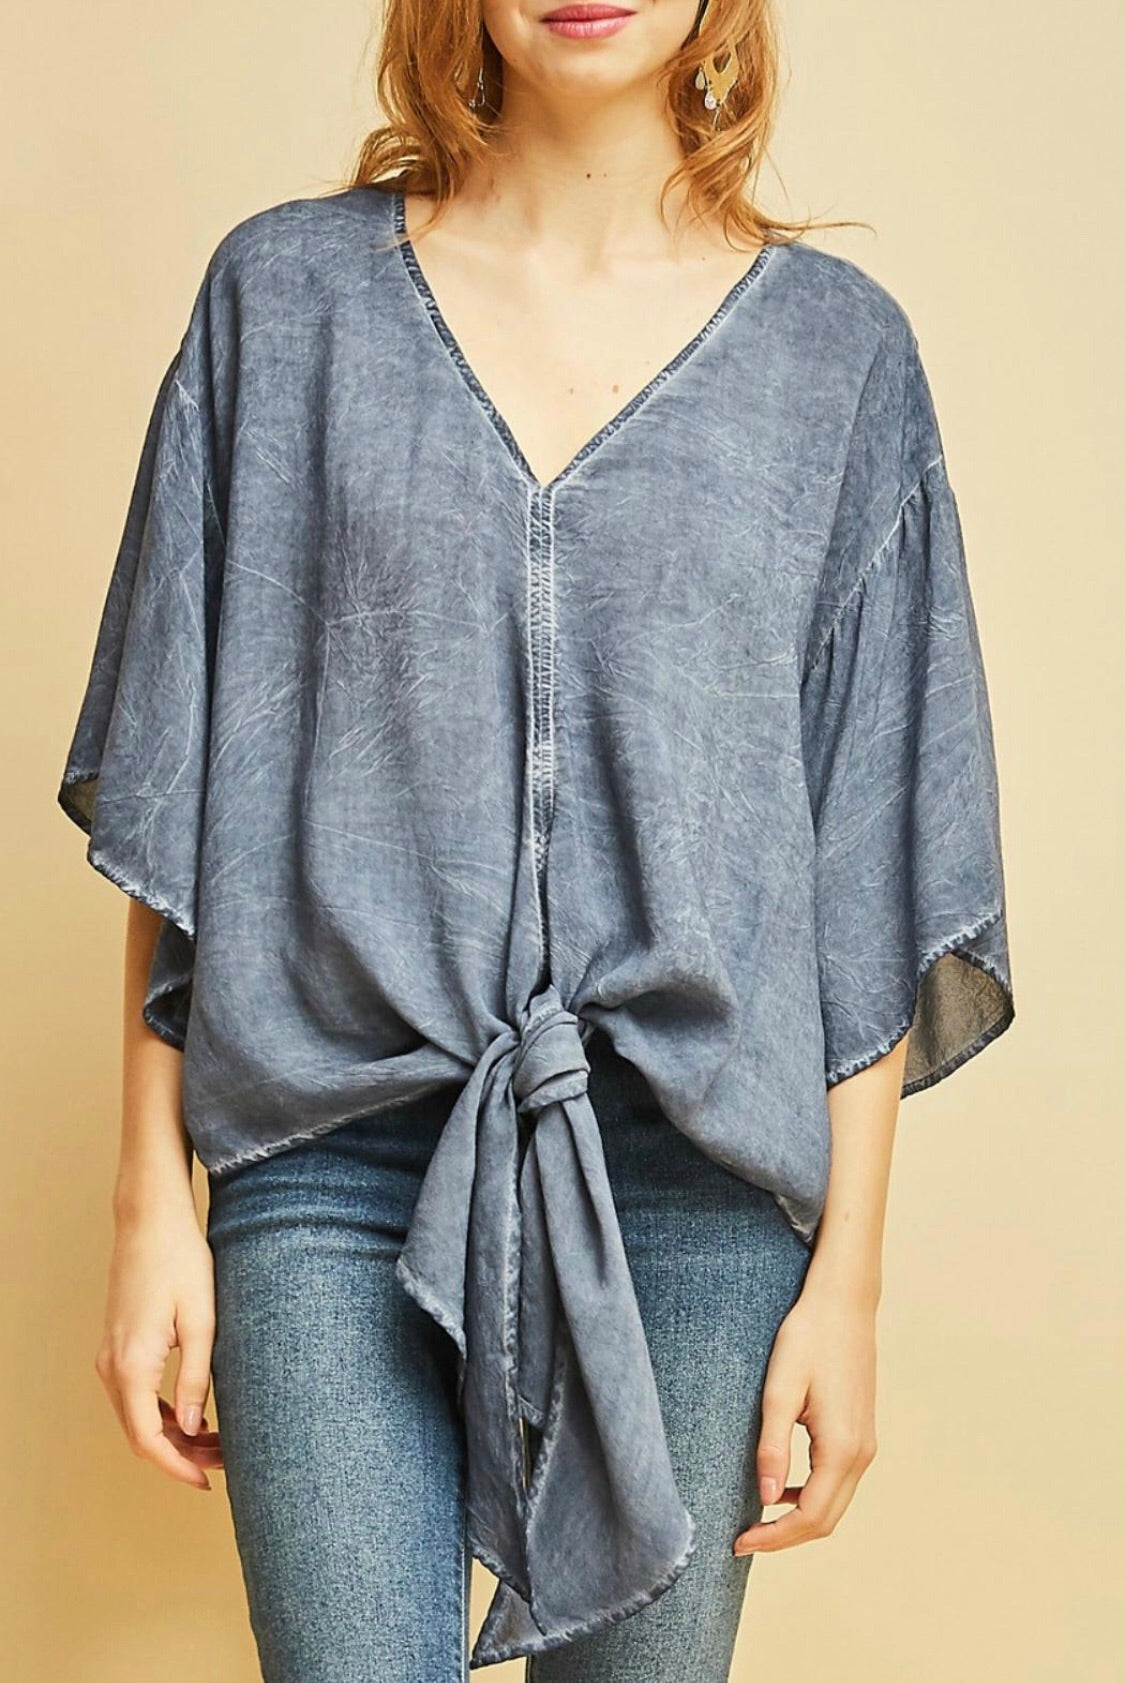 Fit to be Tied blouse